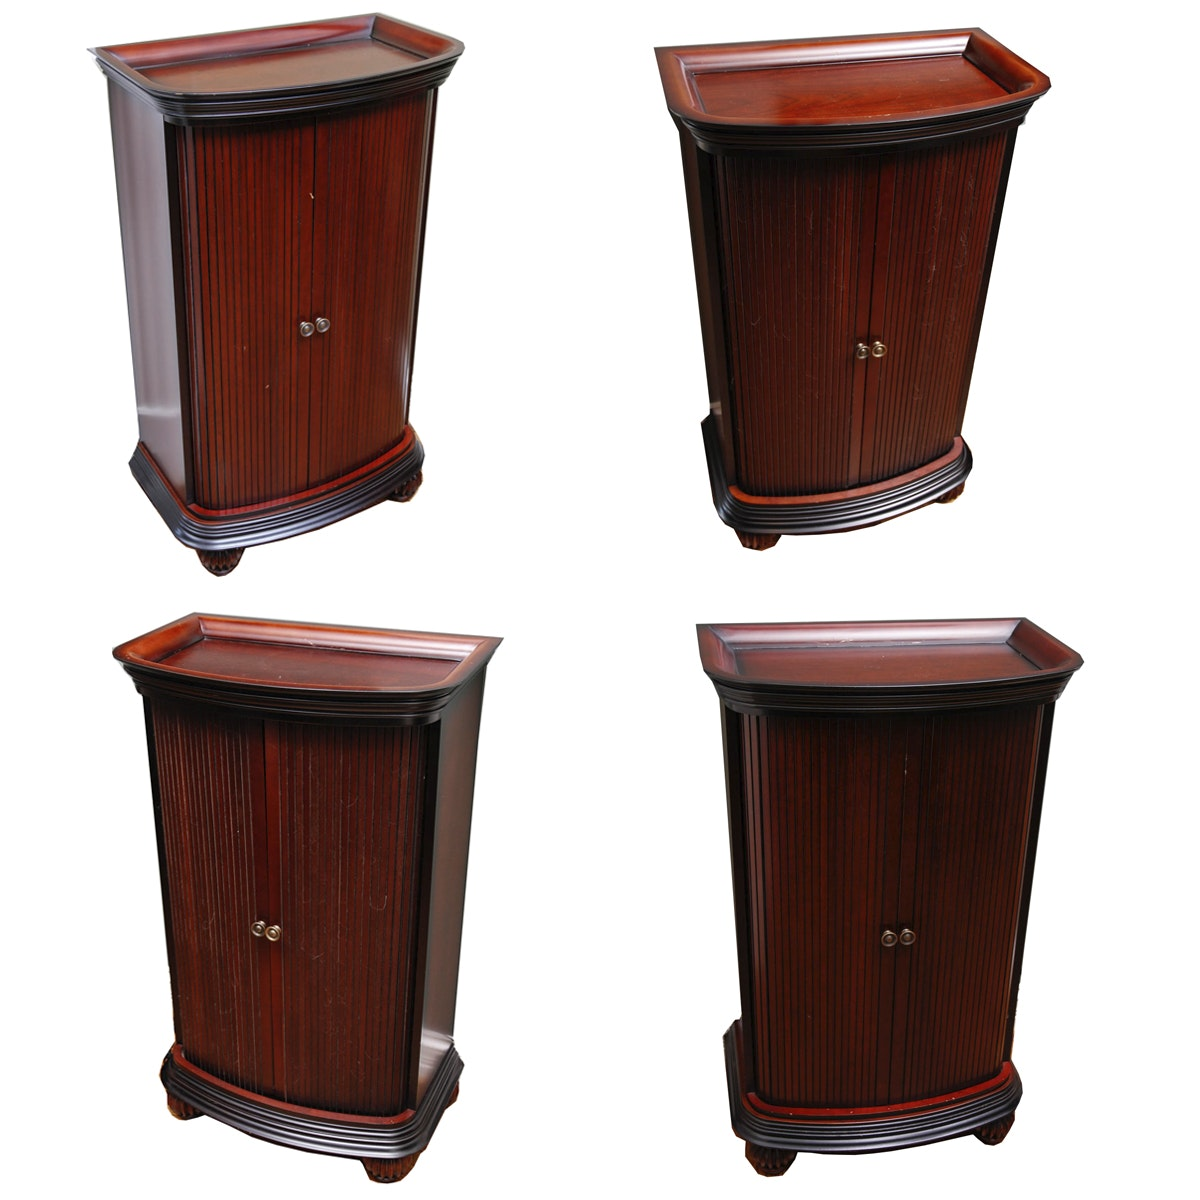 Bombay Furniture Wooden Accent Cabinets